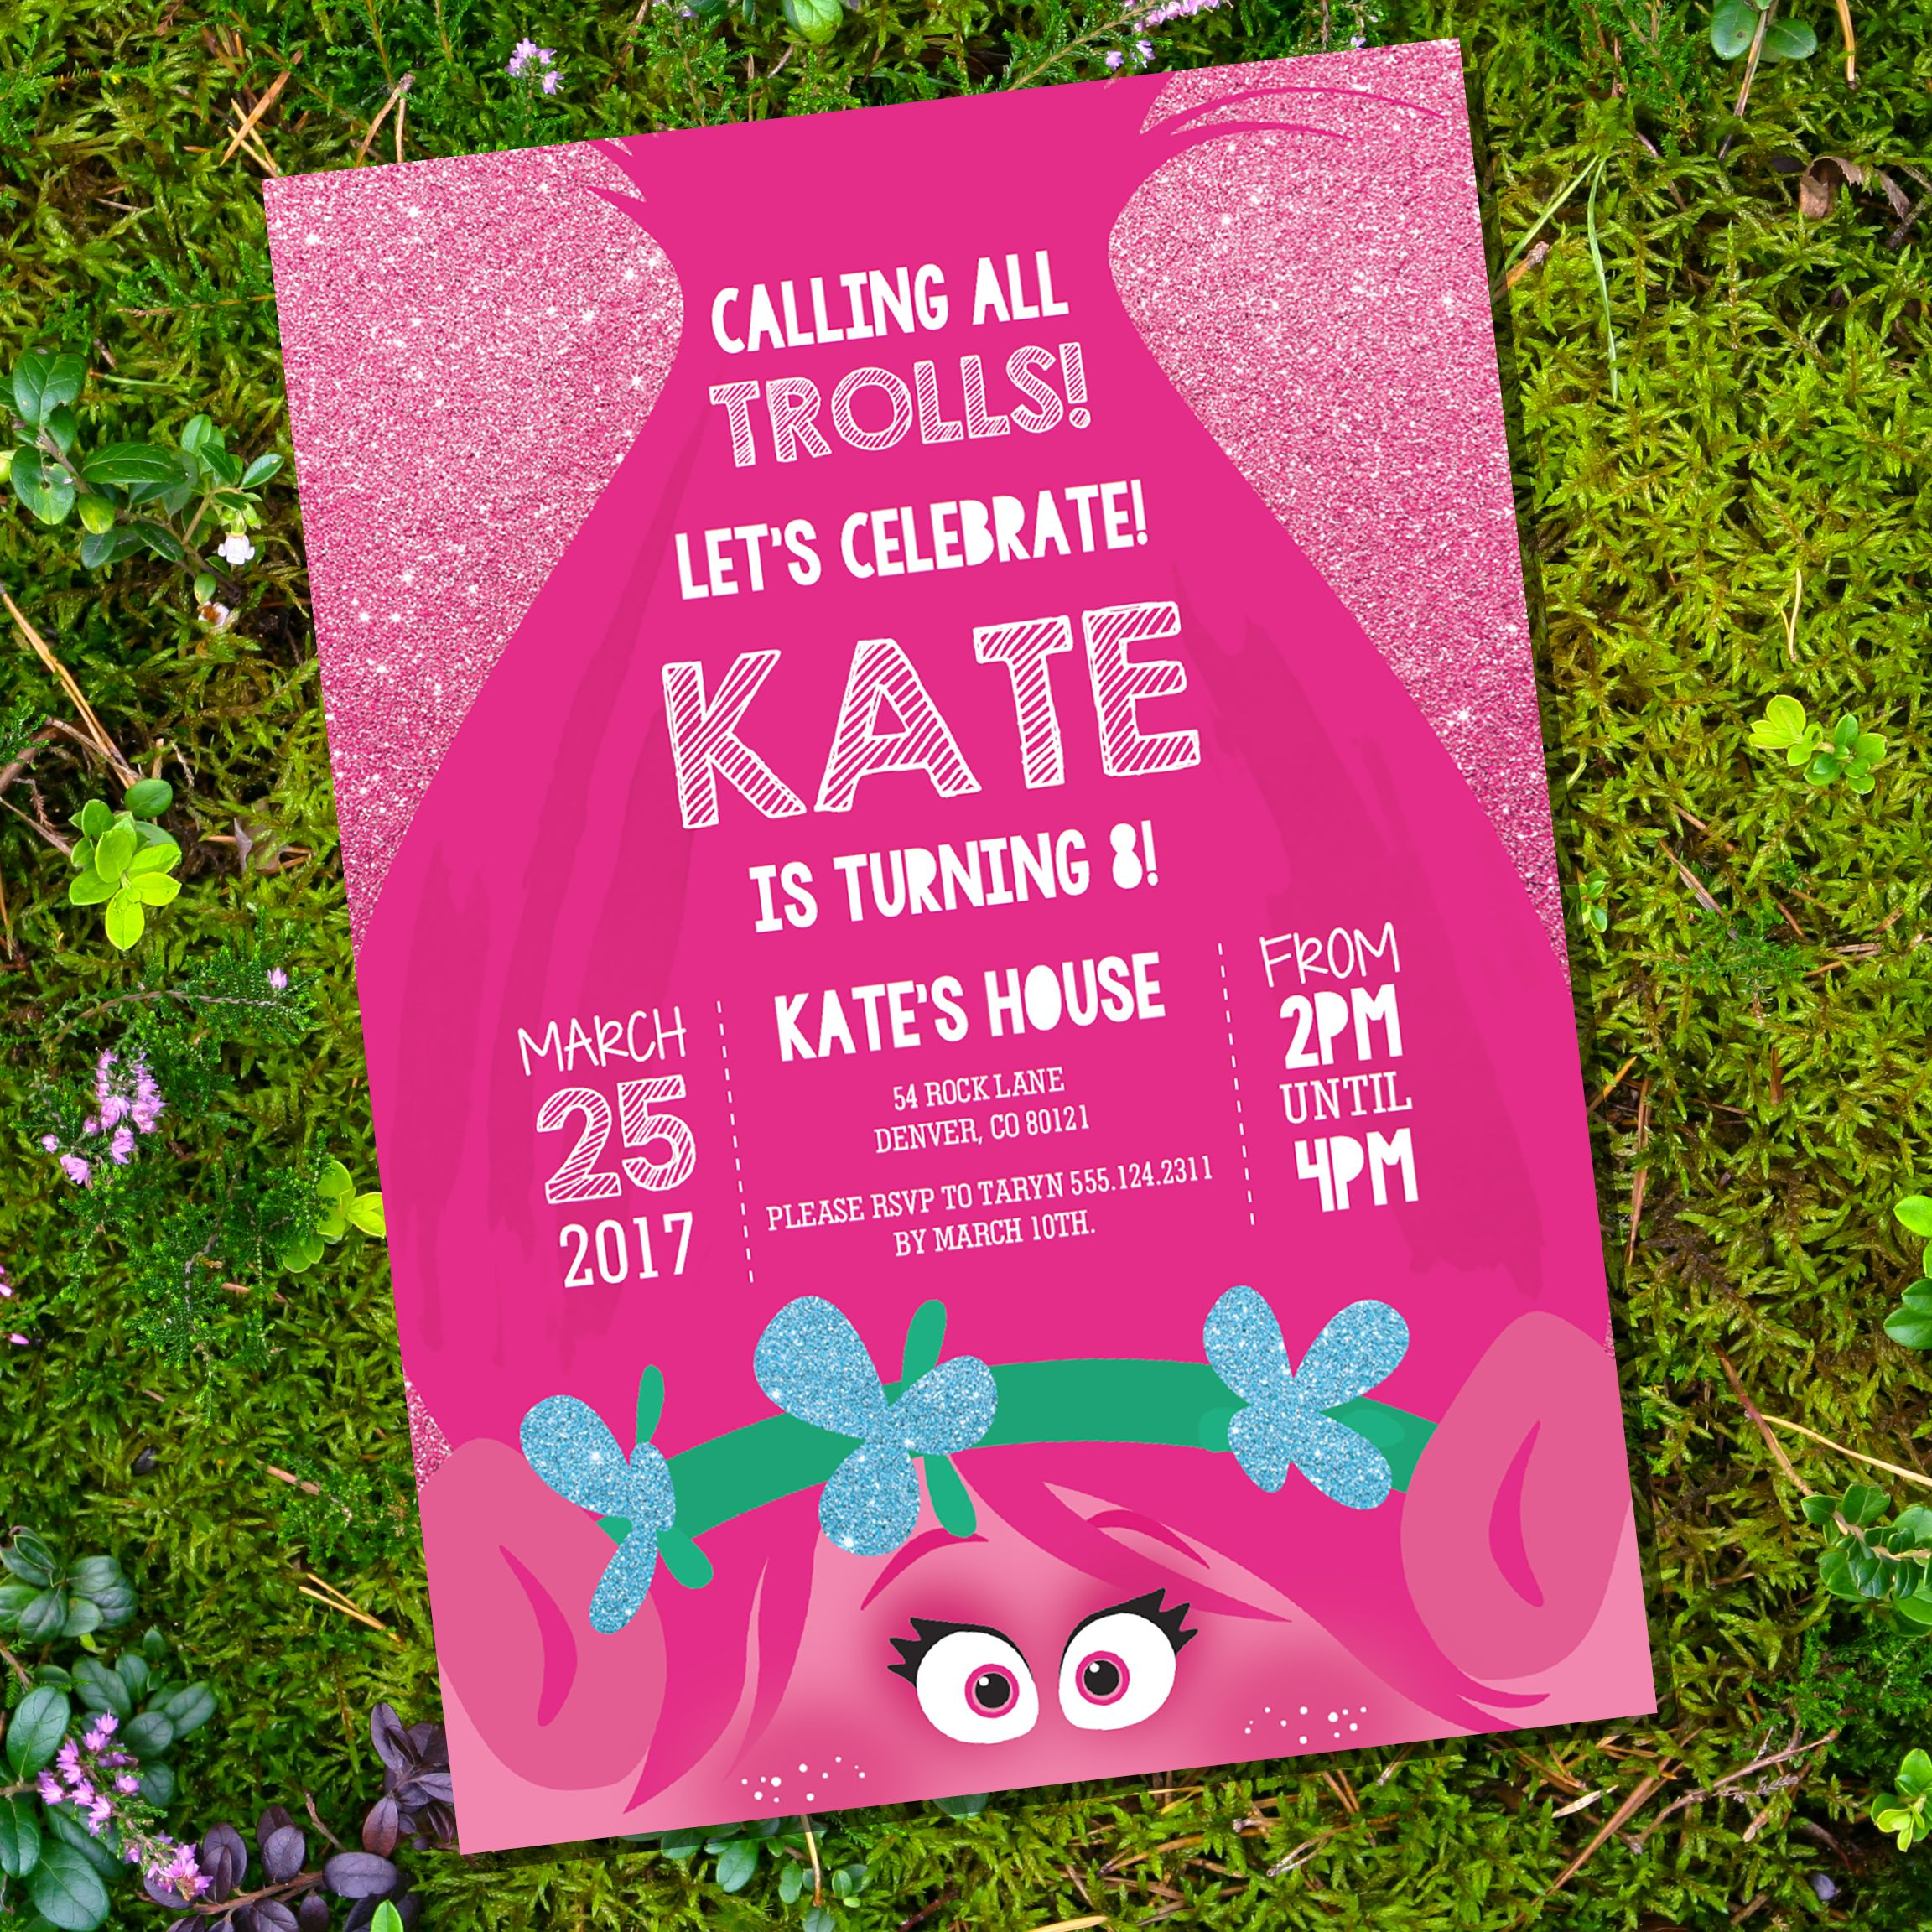 It's just an image of Ridiculous Printable Trolls Birthday Invitations